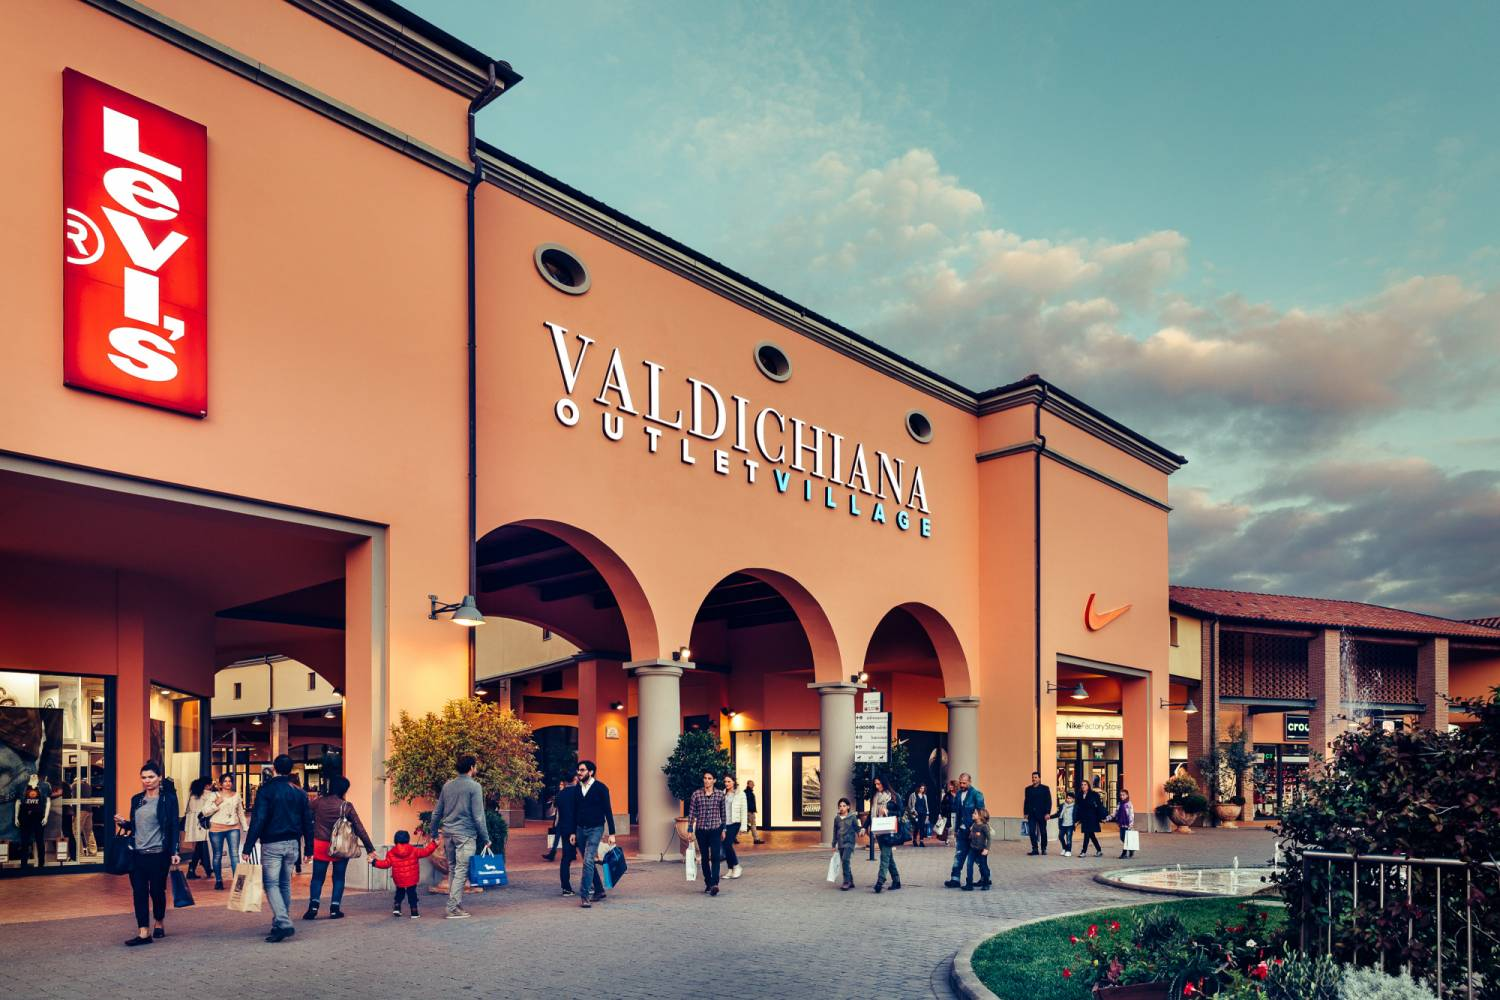 Valdichiana Outlet Village from Rome - Tripacalink